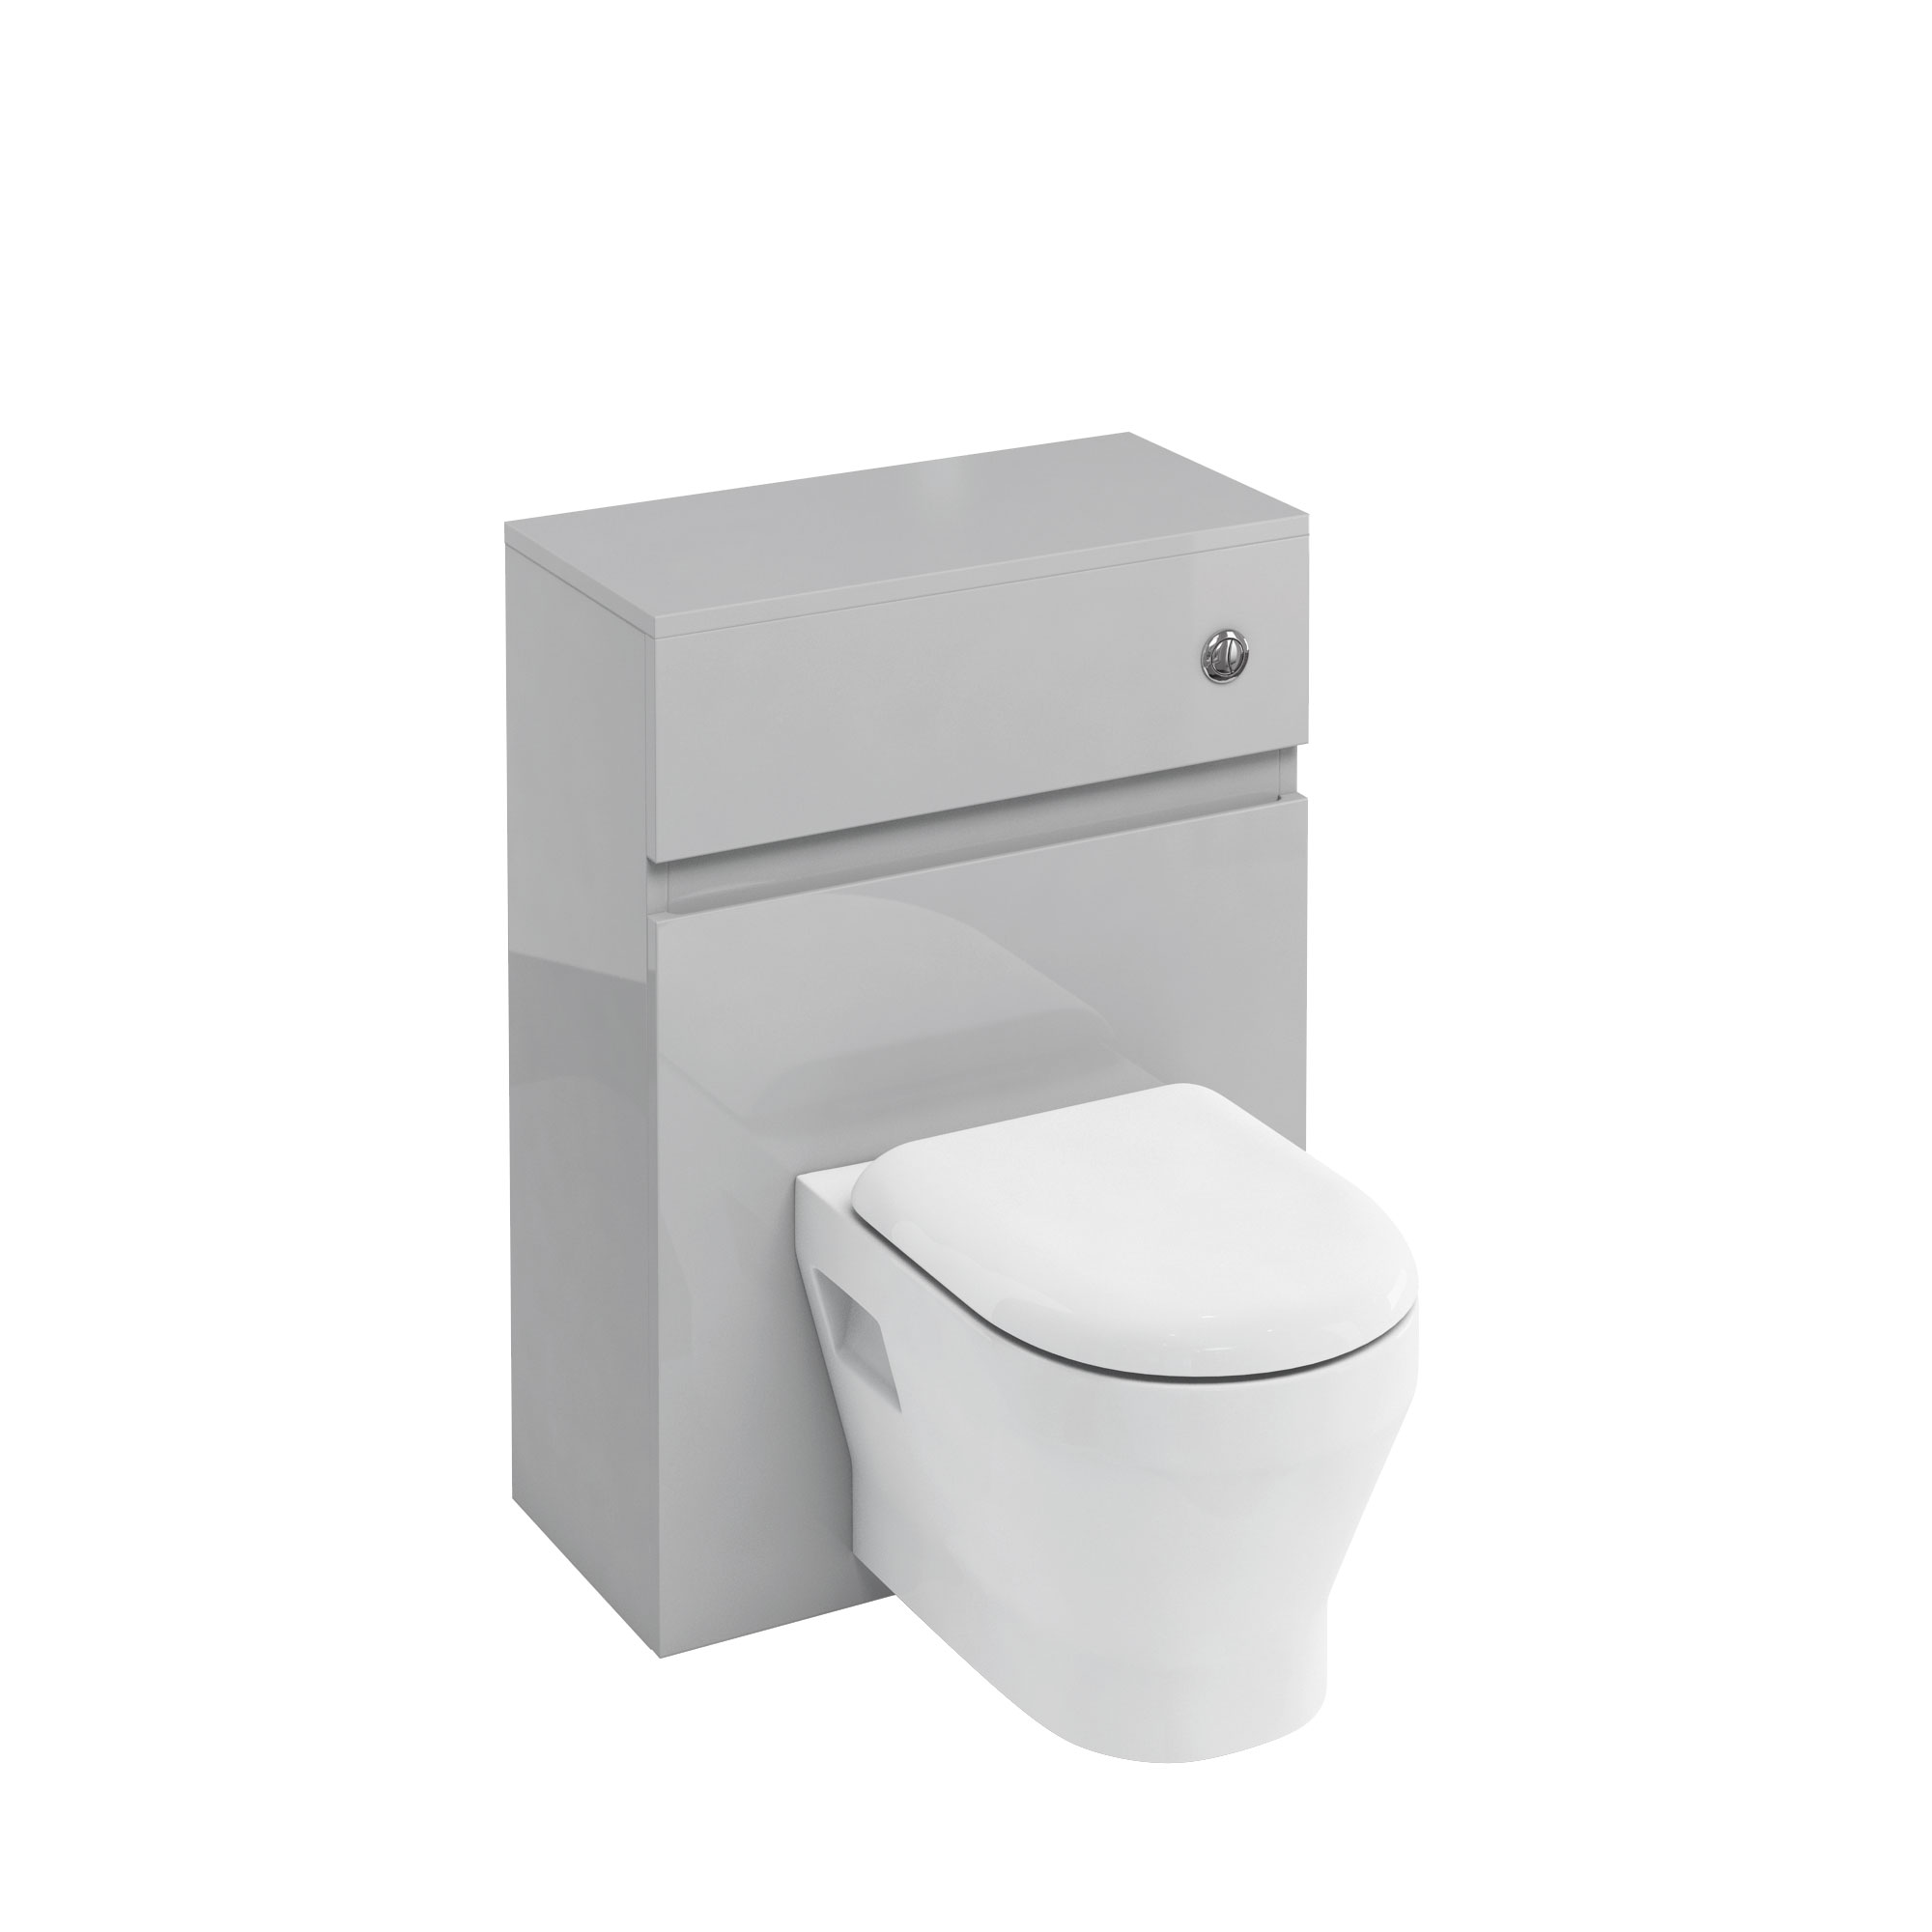 click on WC Unit with Flush Button for Wall Hung WC image to enlarge